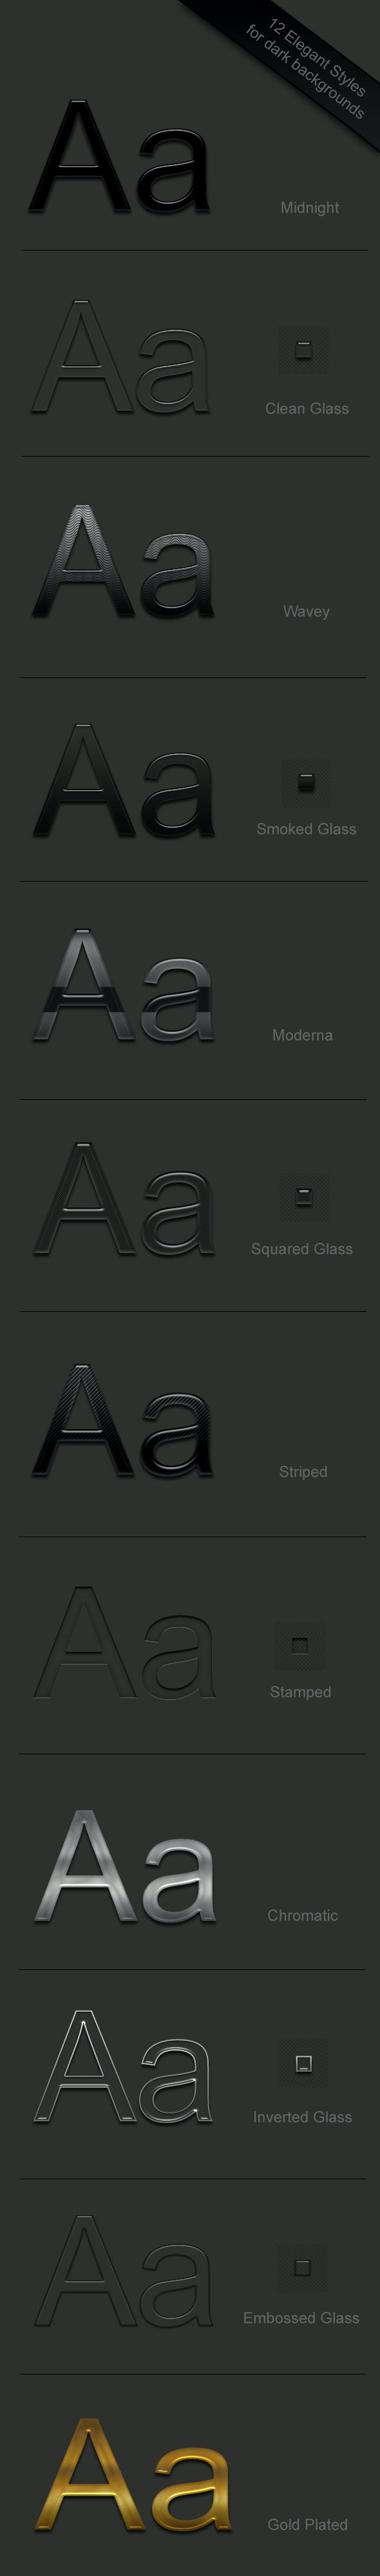 12 Elegant Text Styles for drak backgrounds - Photoshop Add-ons